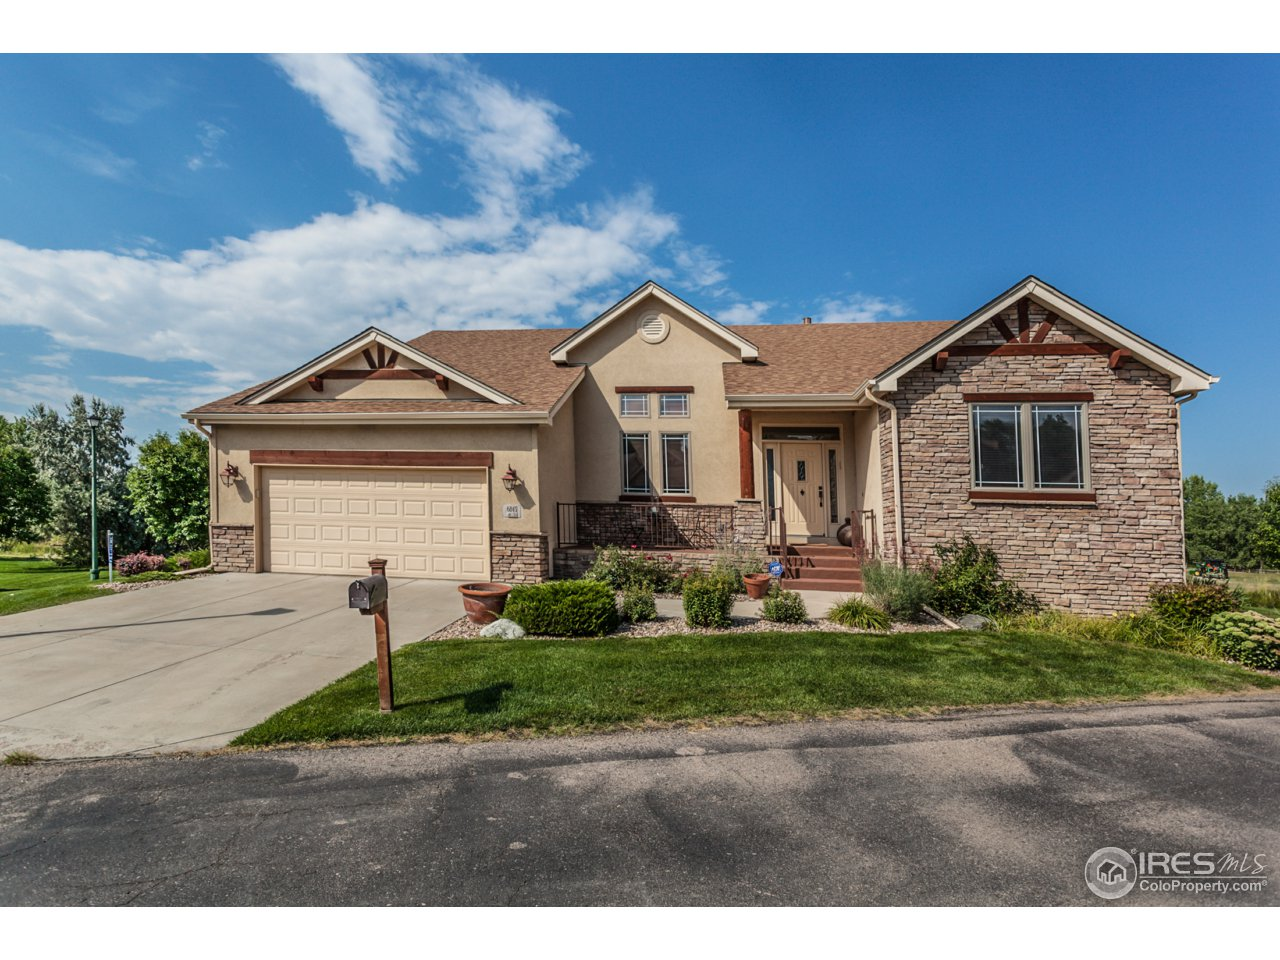 6845 Poudre River Rd 3, Greeley CO 80634